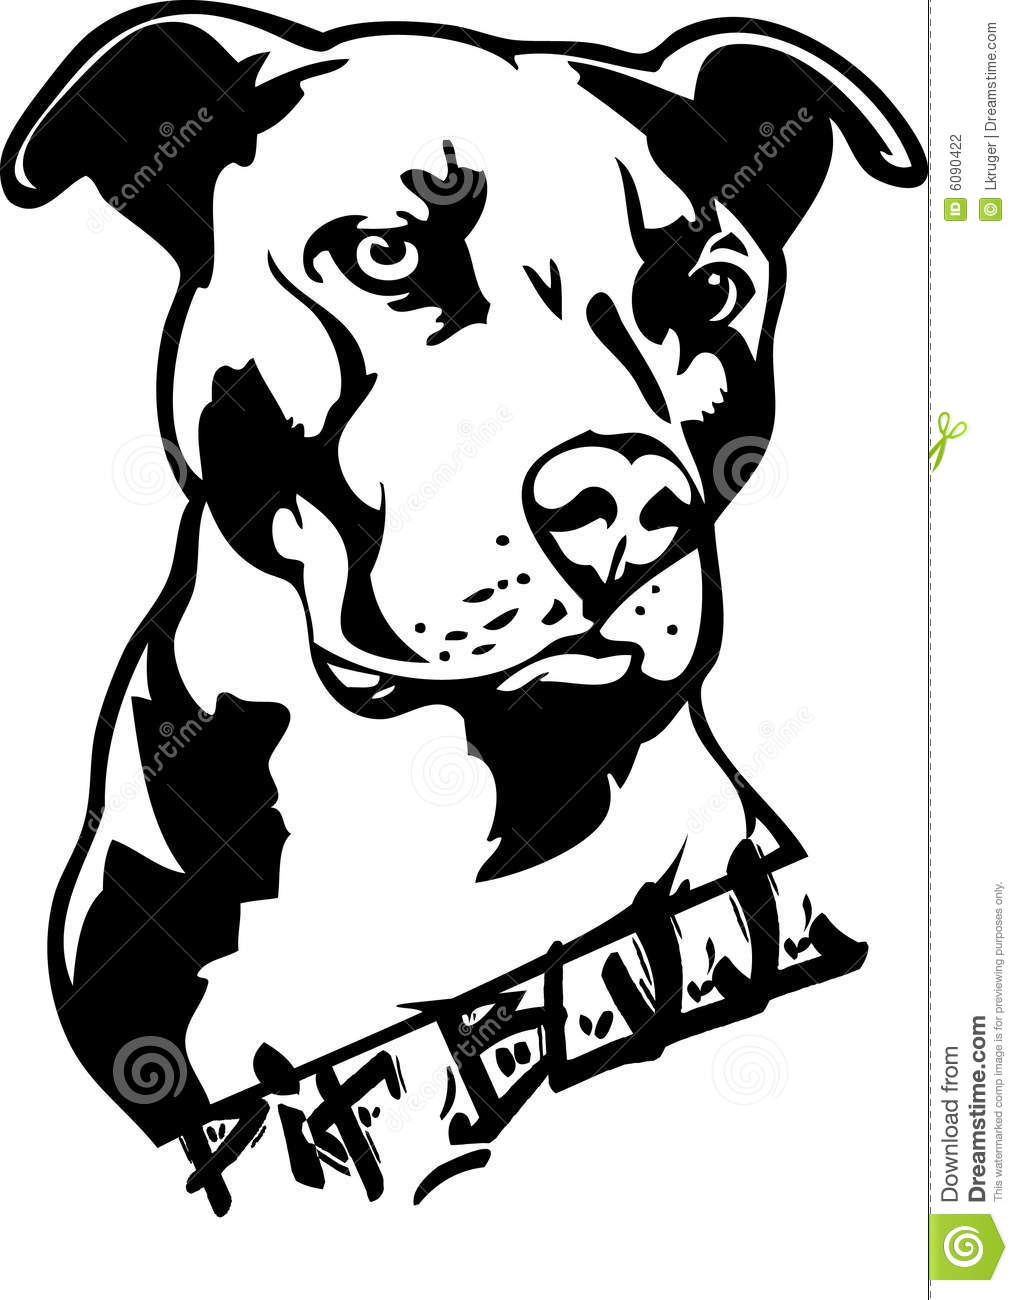 Pit Bull clipart #16, Download drawings